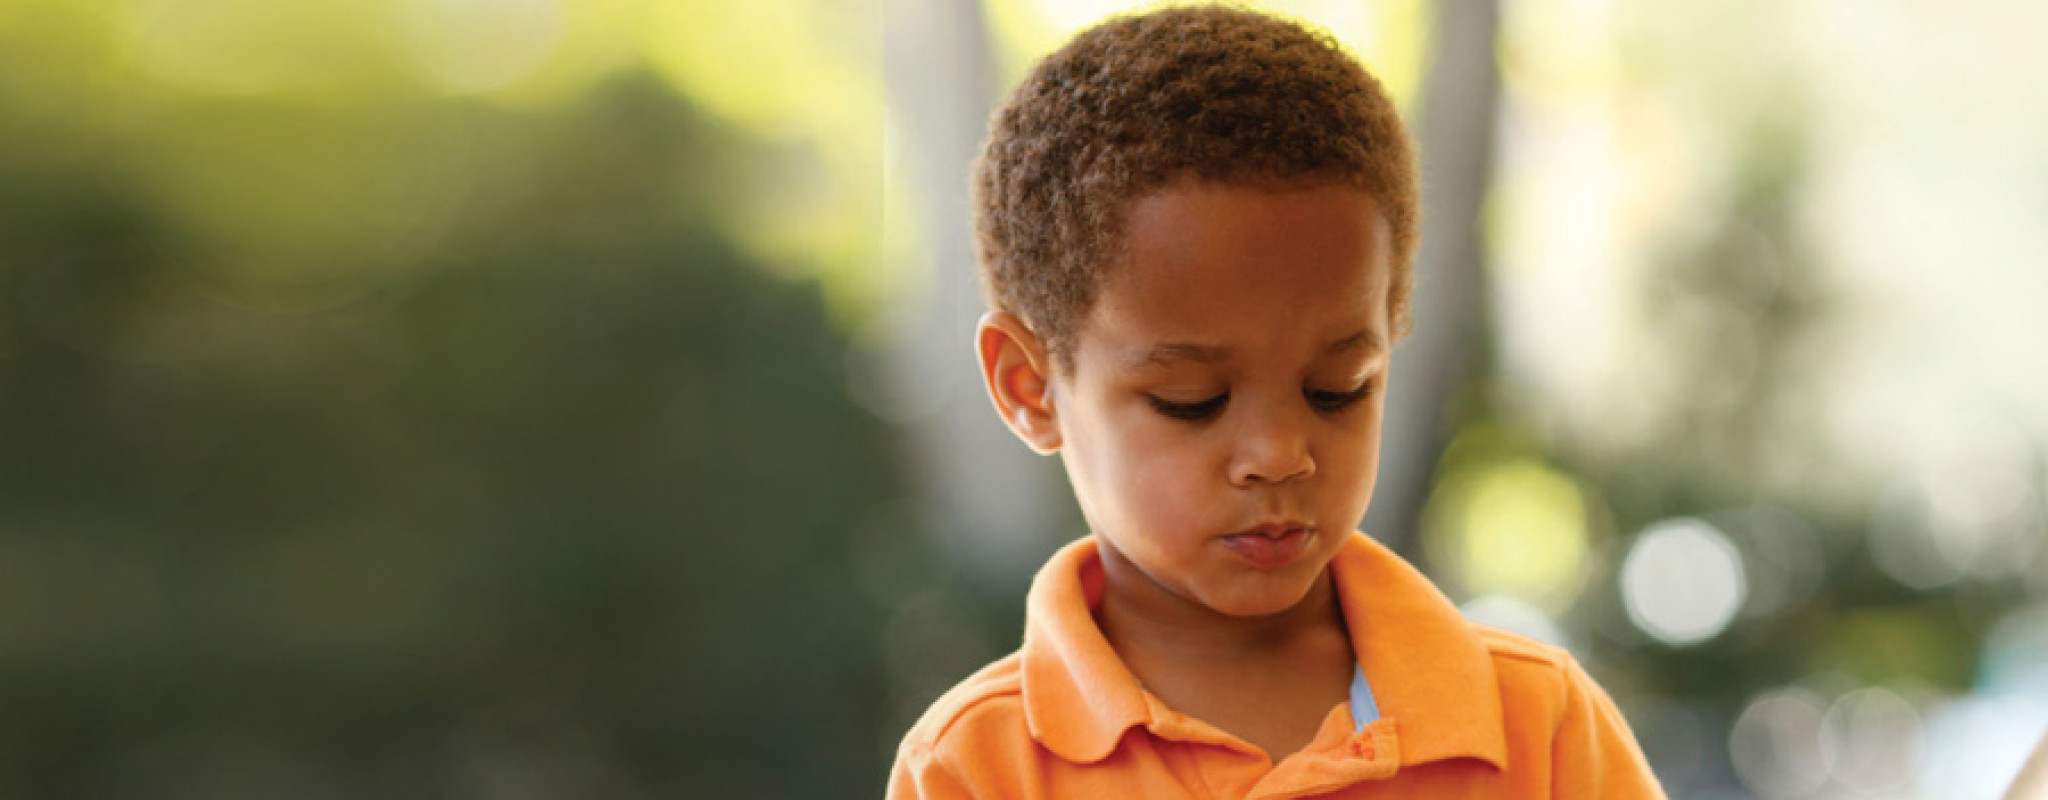 The ABCs of Autism, Powered by Nemours Children's Health System